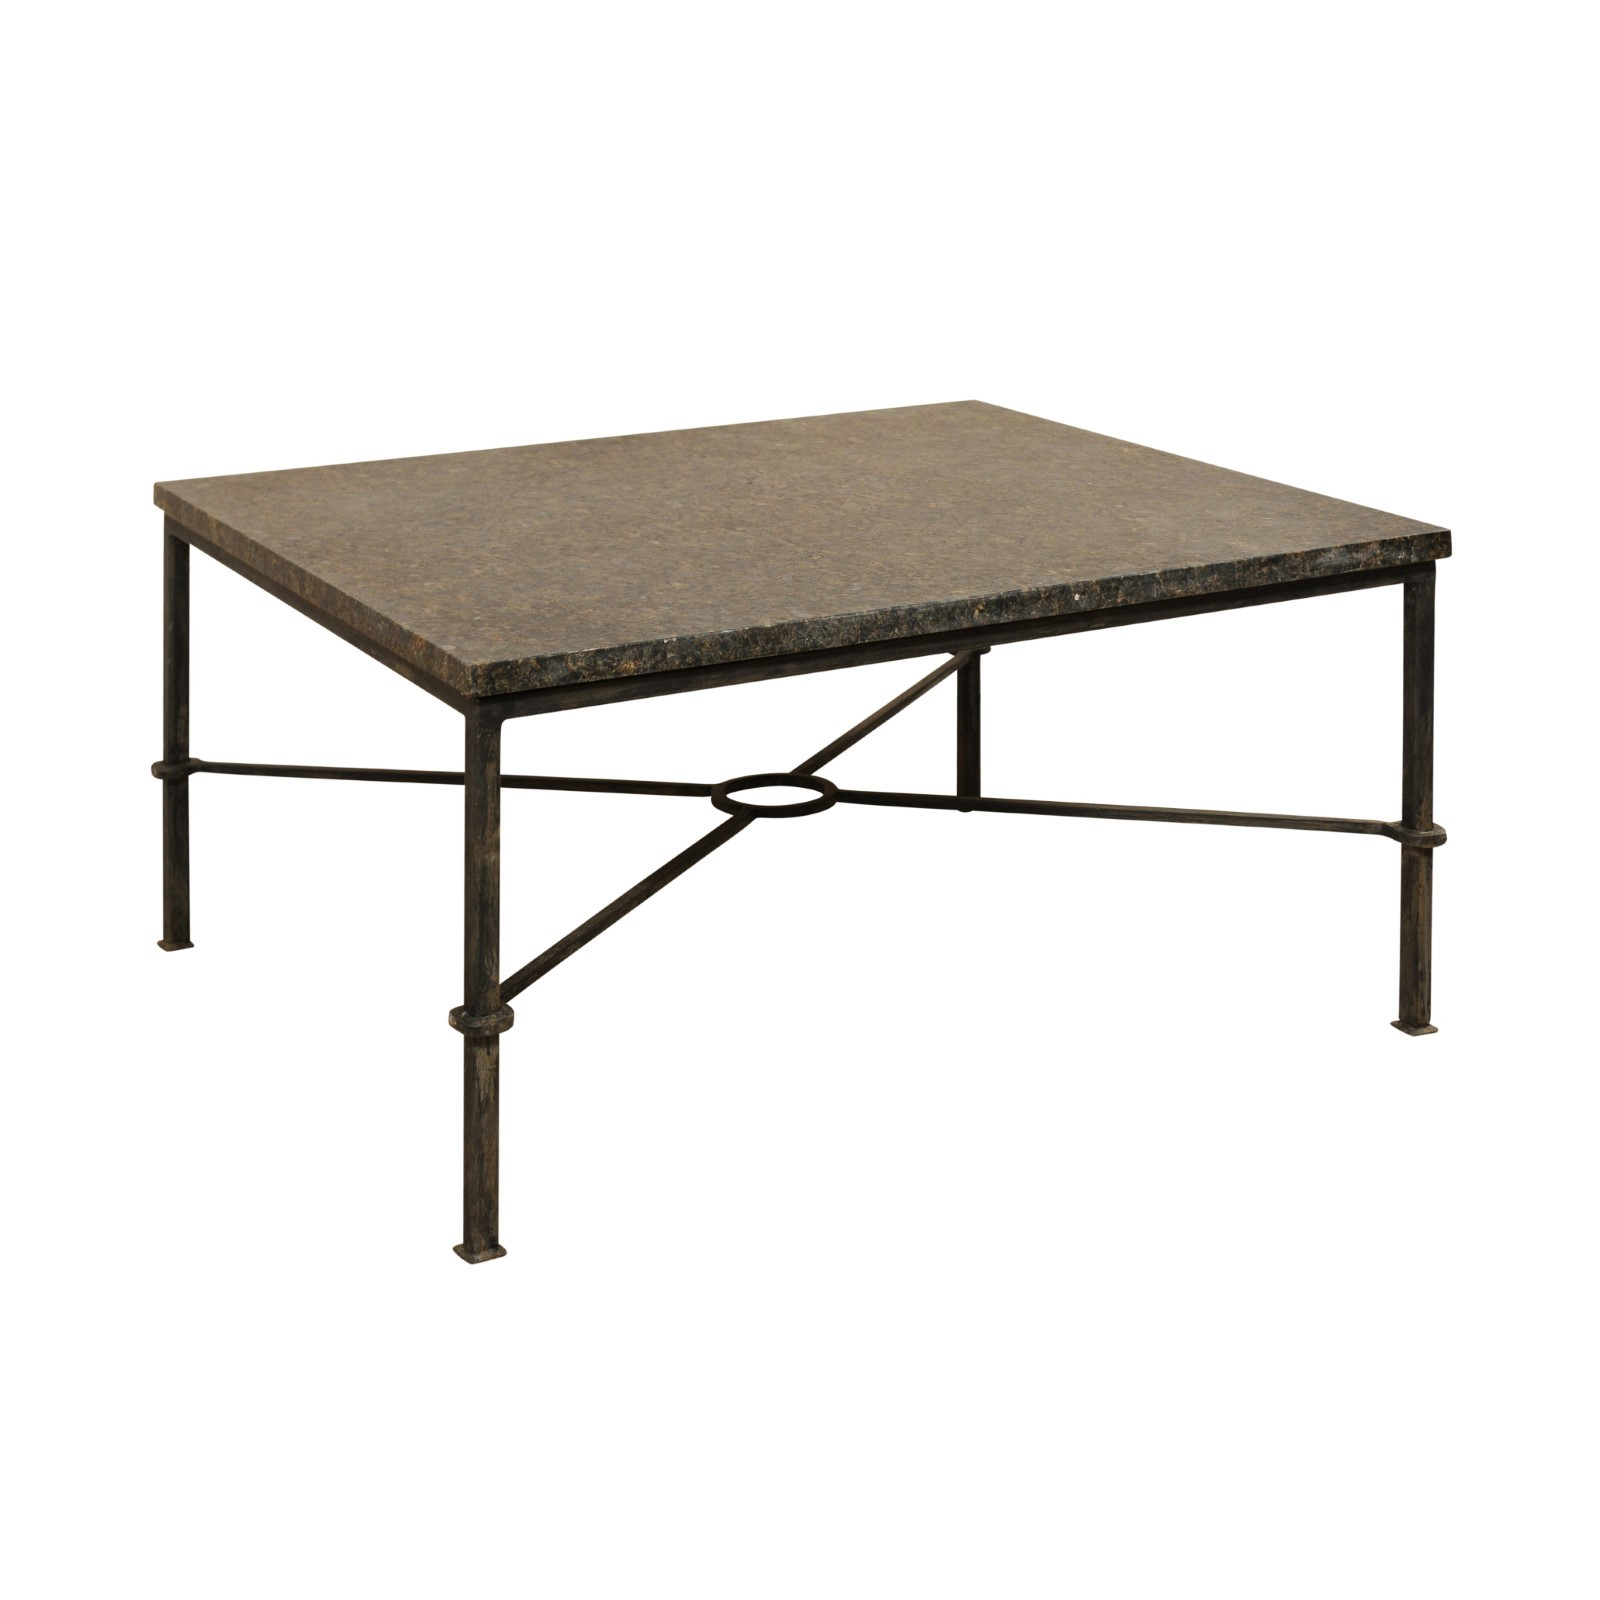 Honed Stone top Coffee Table